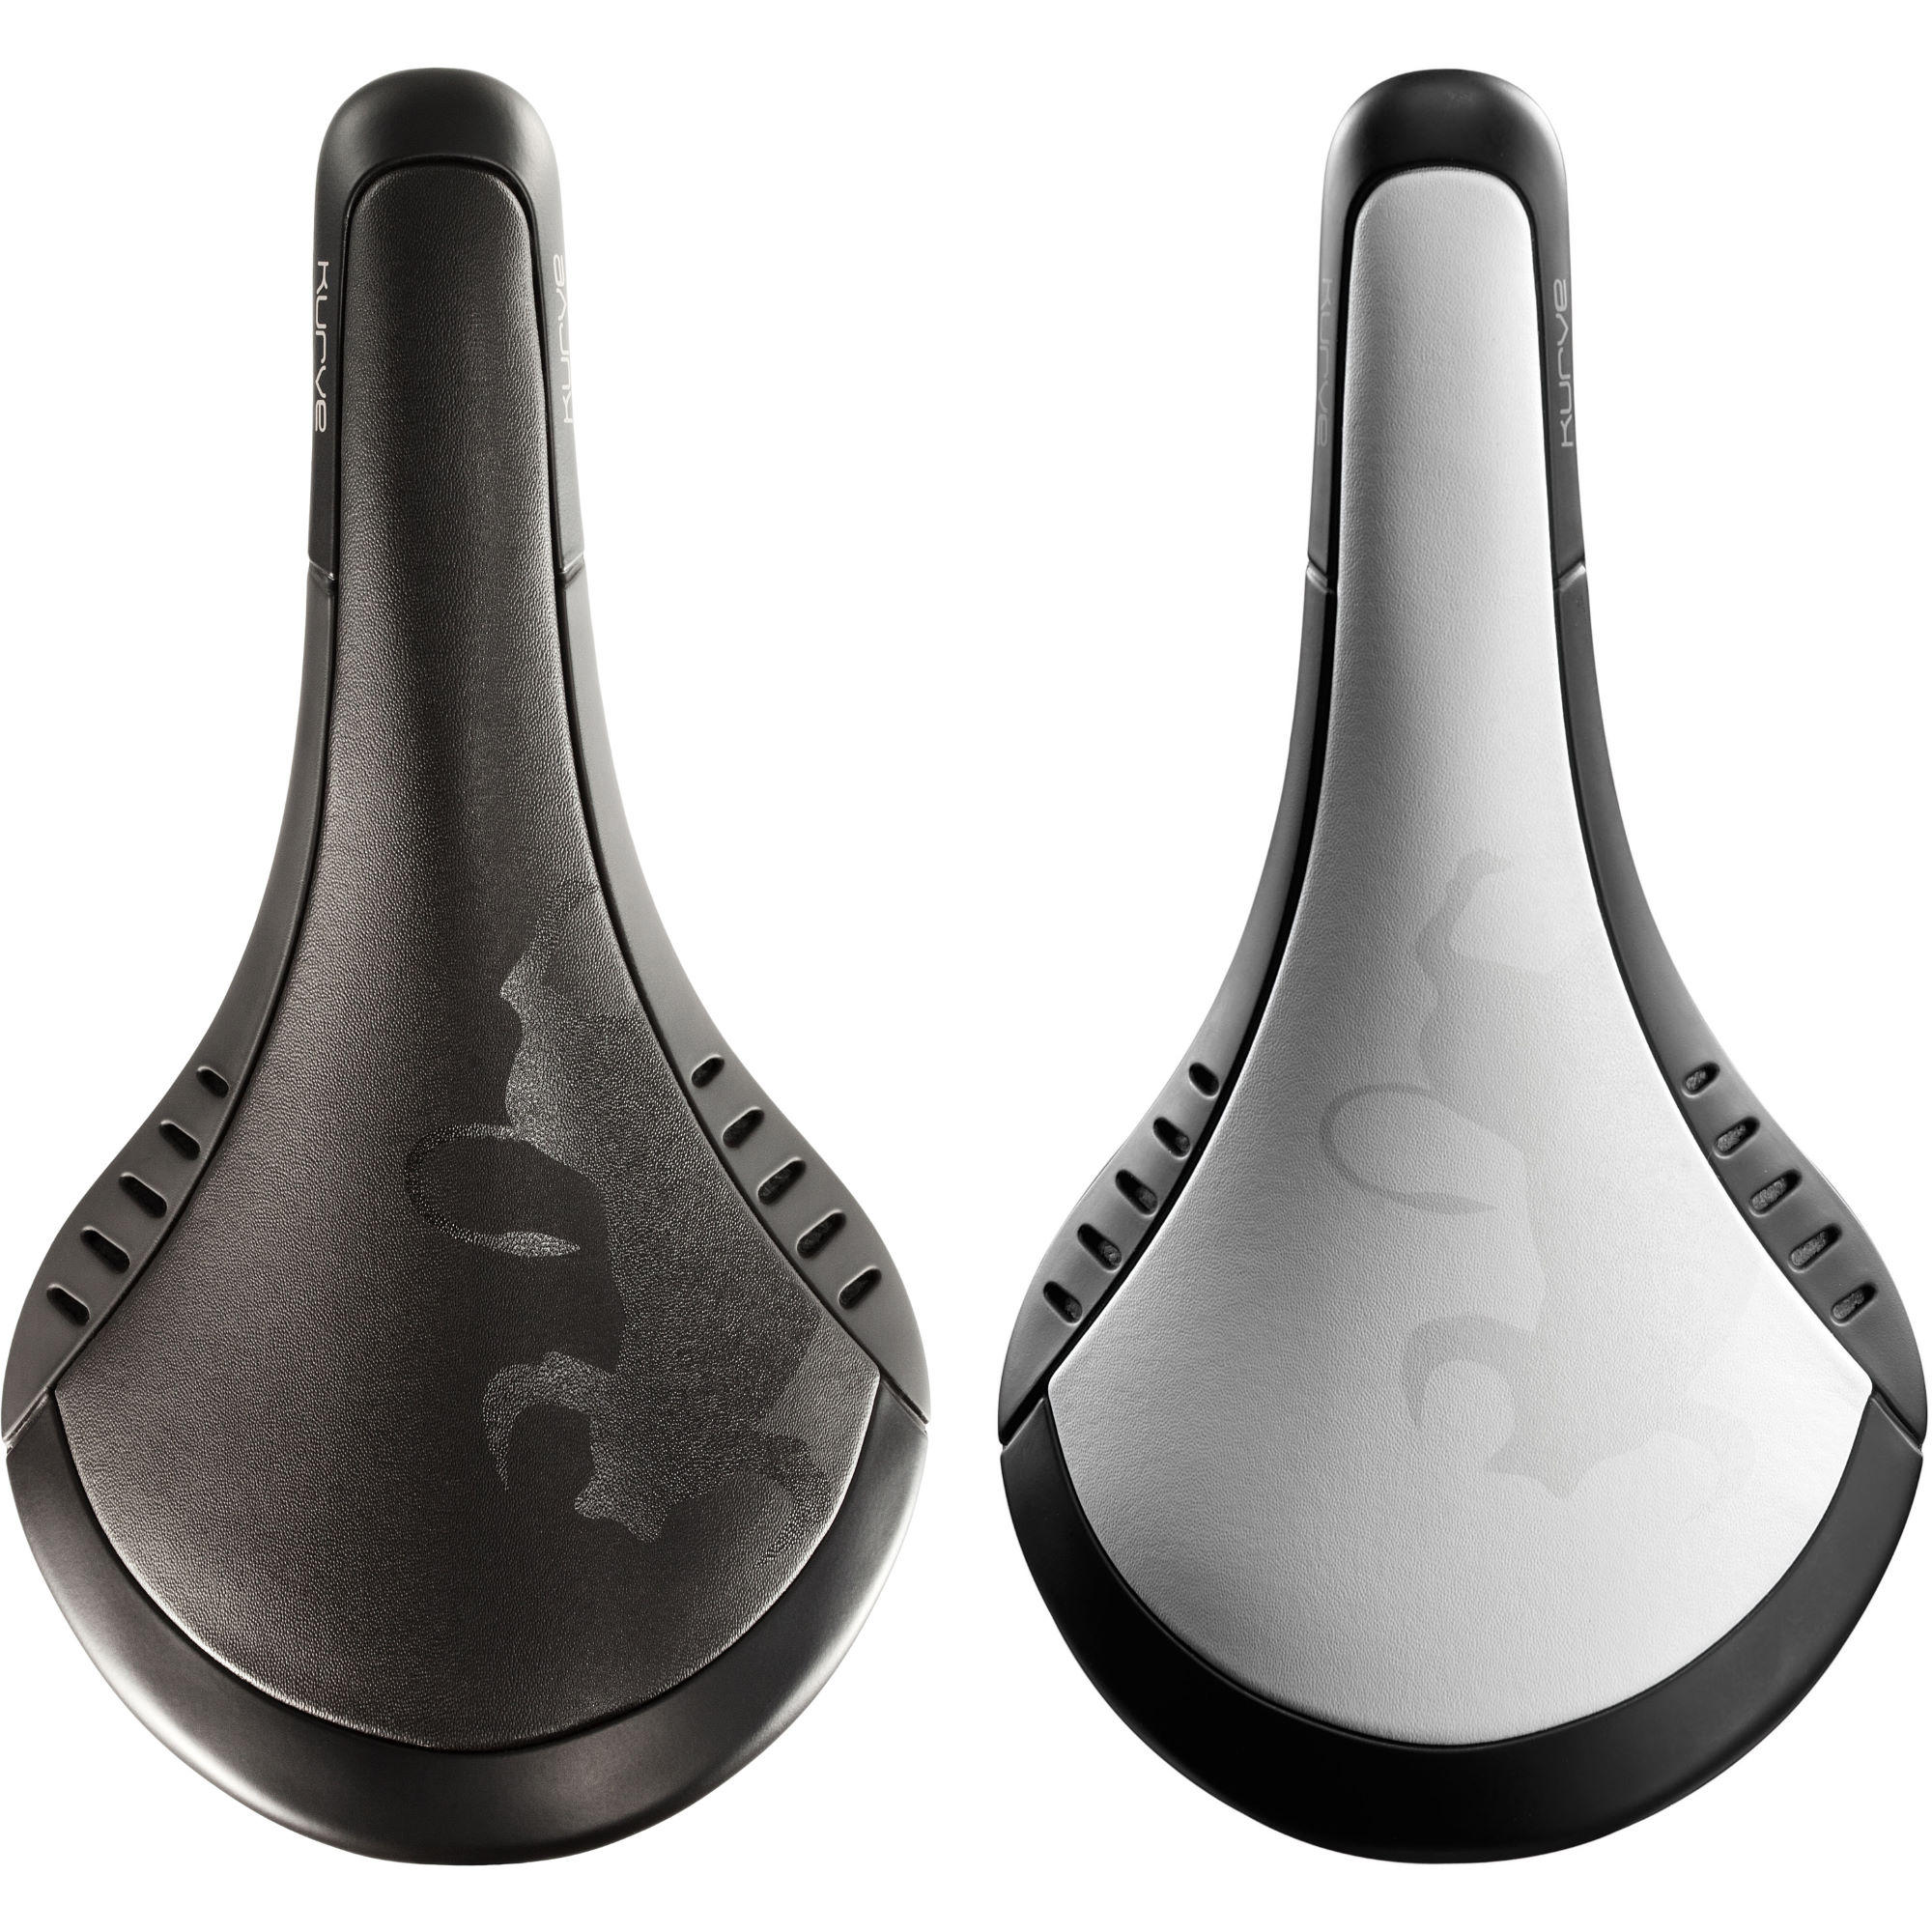 เบาะ Fizik Kurve Bull Carbon Saddle ,Black and White